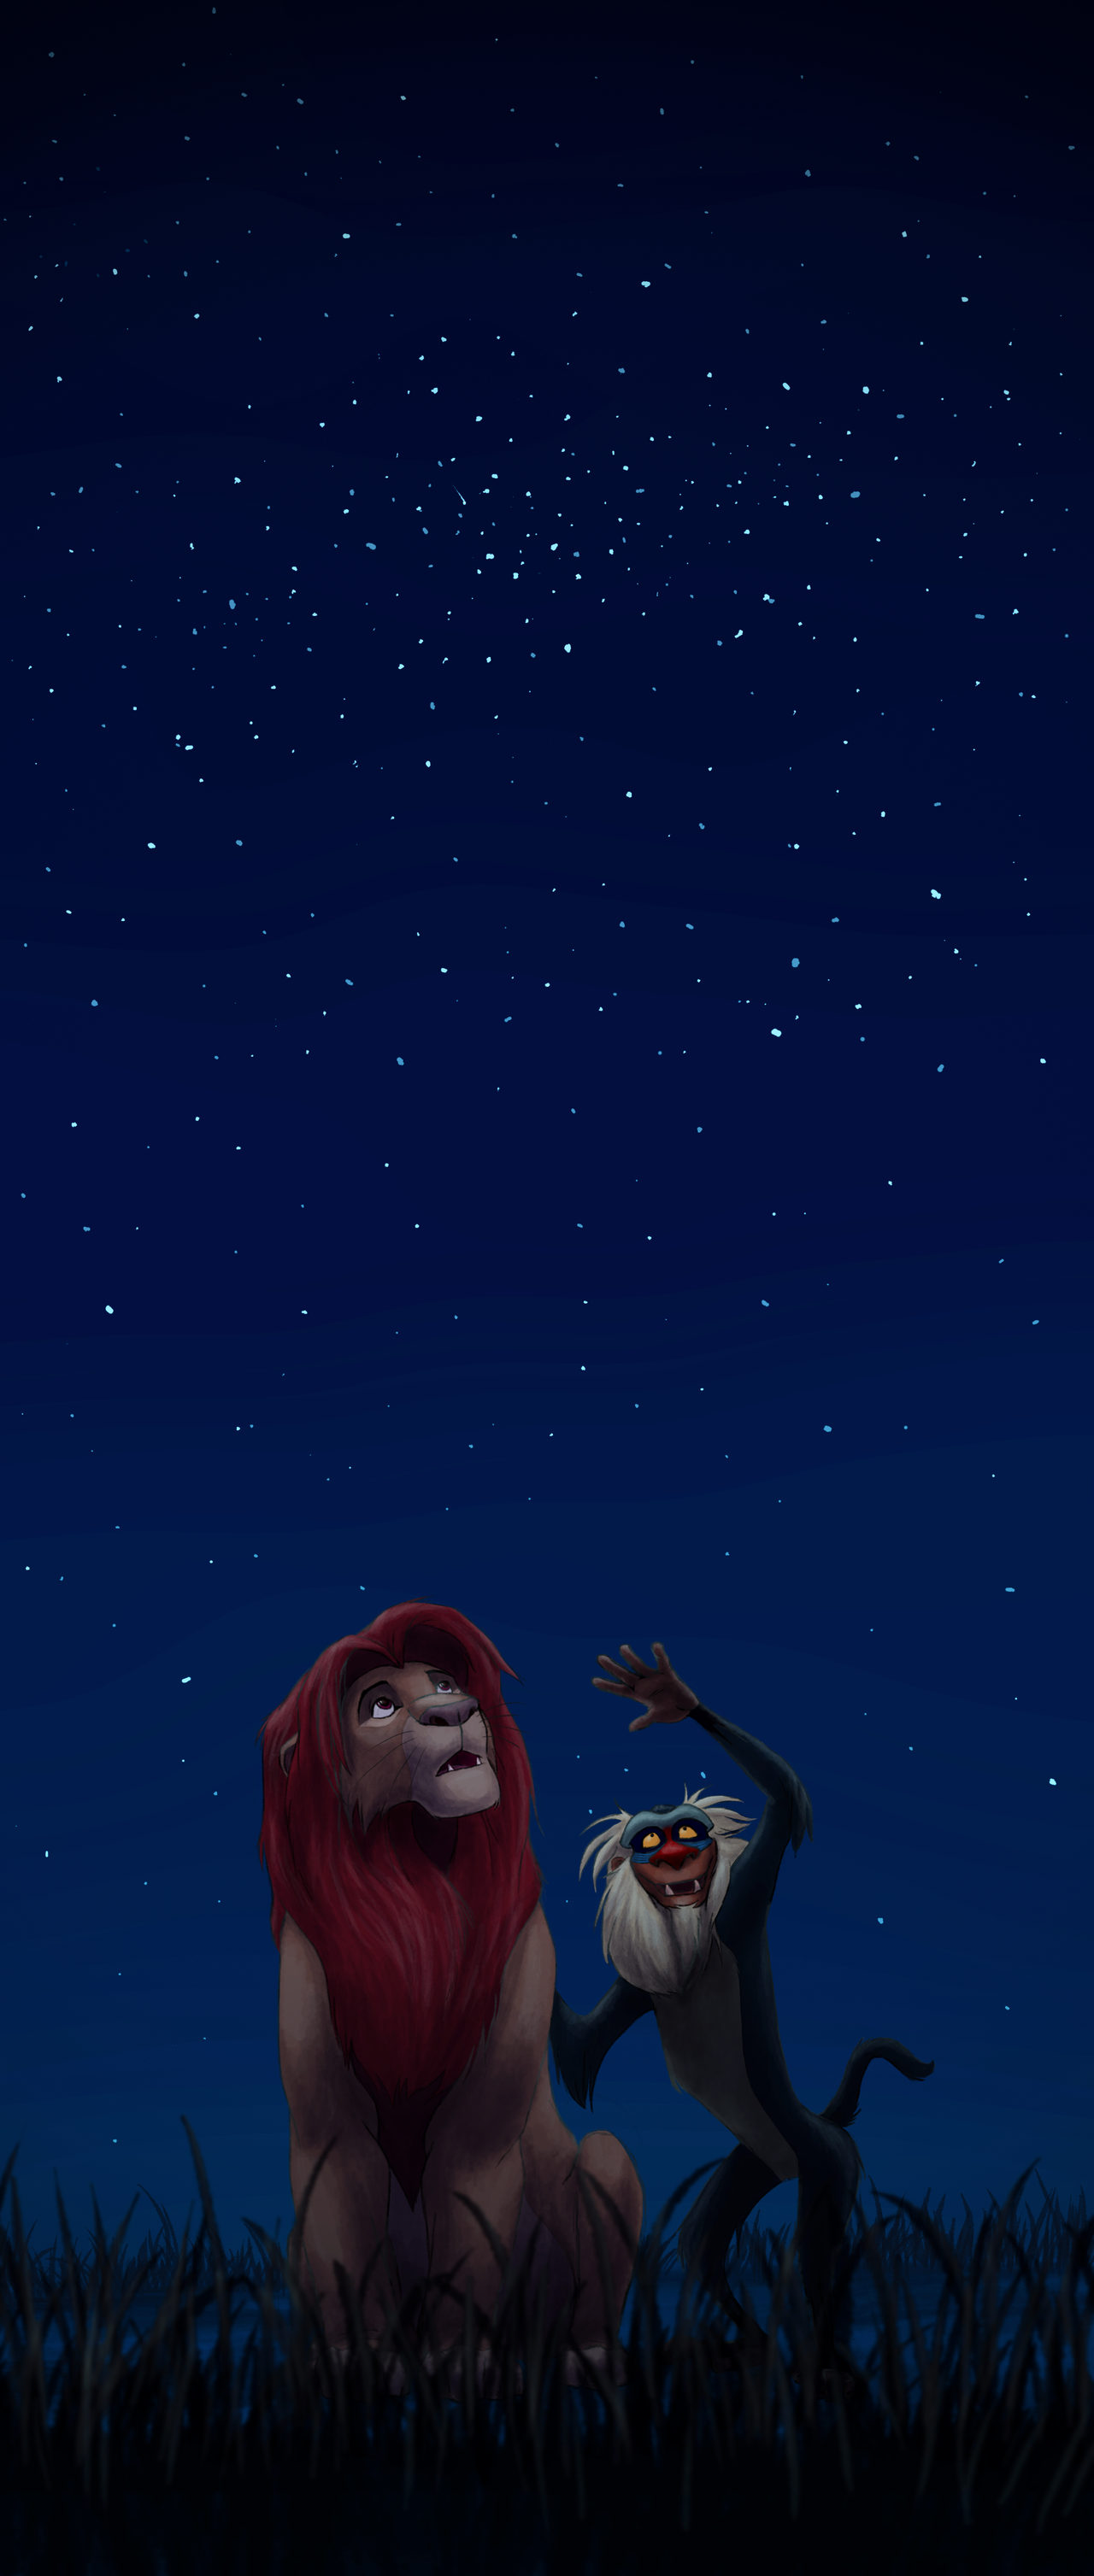 They Live In You By Atarial On Deviantart The Lion King Characters Disney Lion King Disney Art